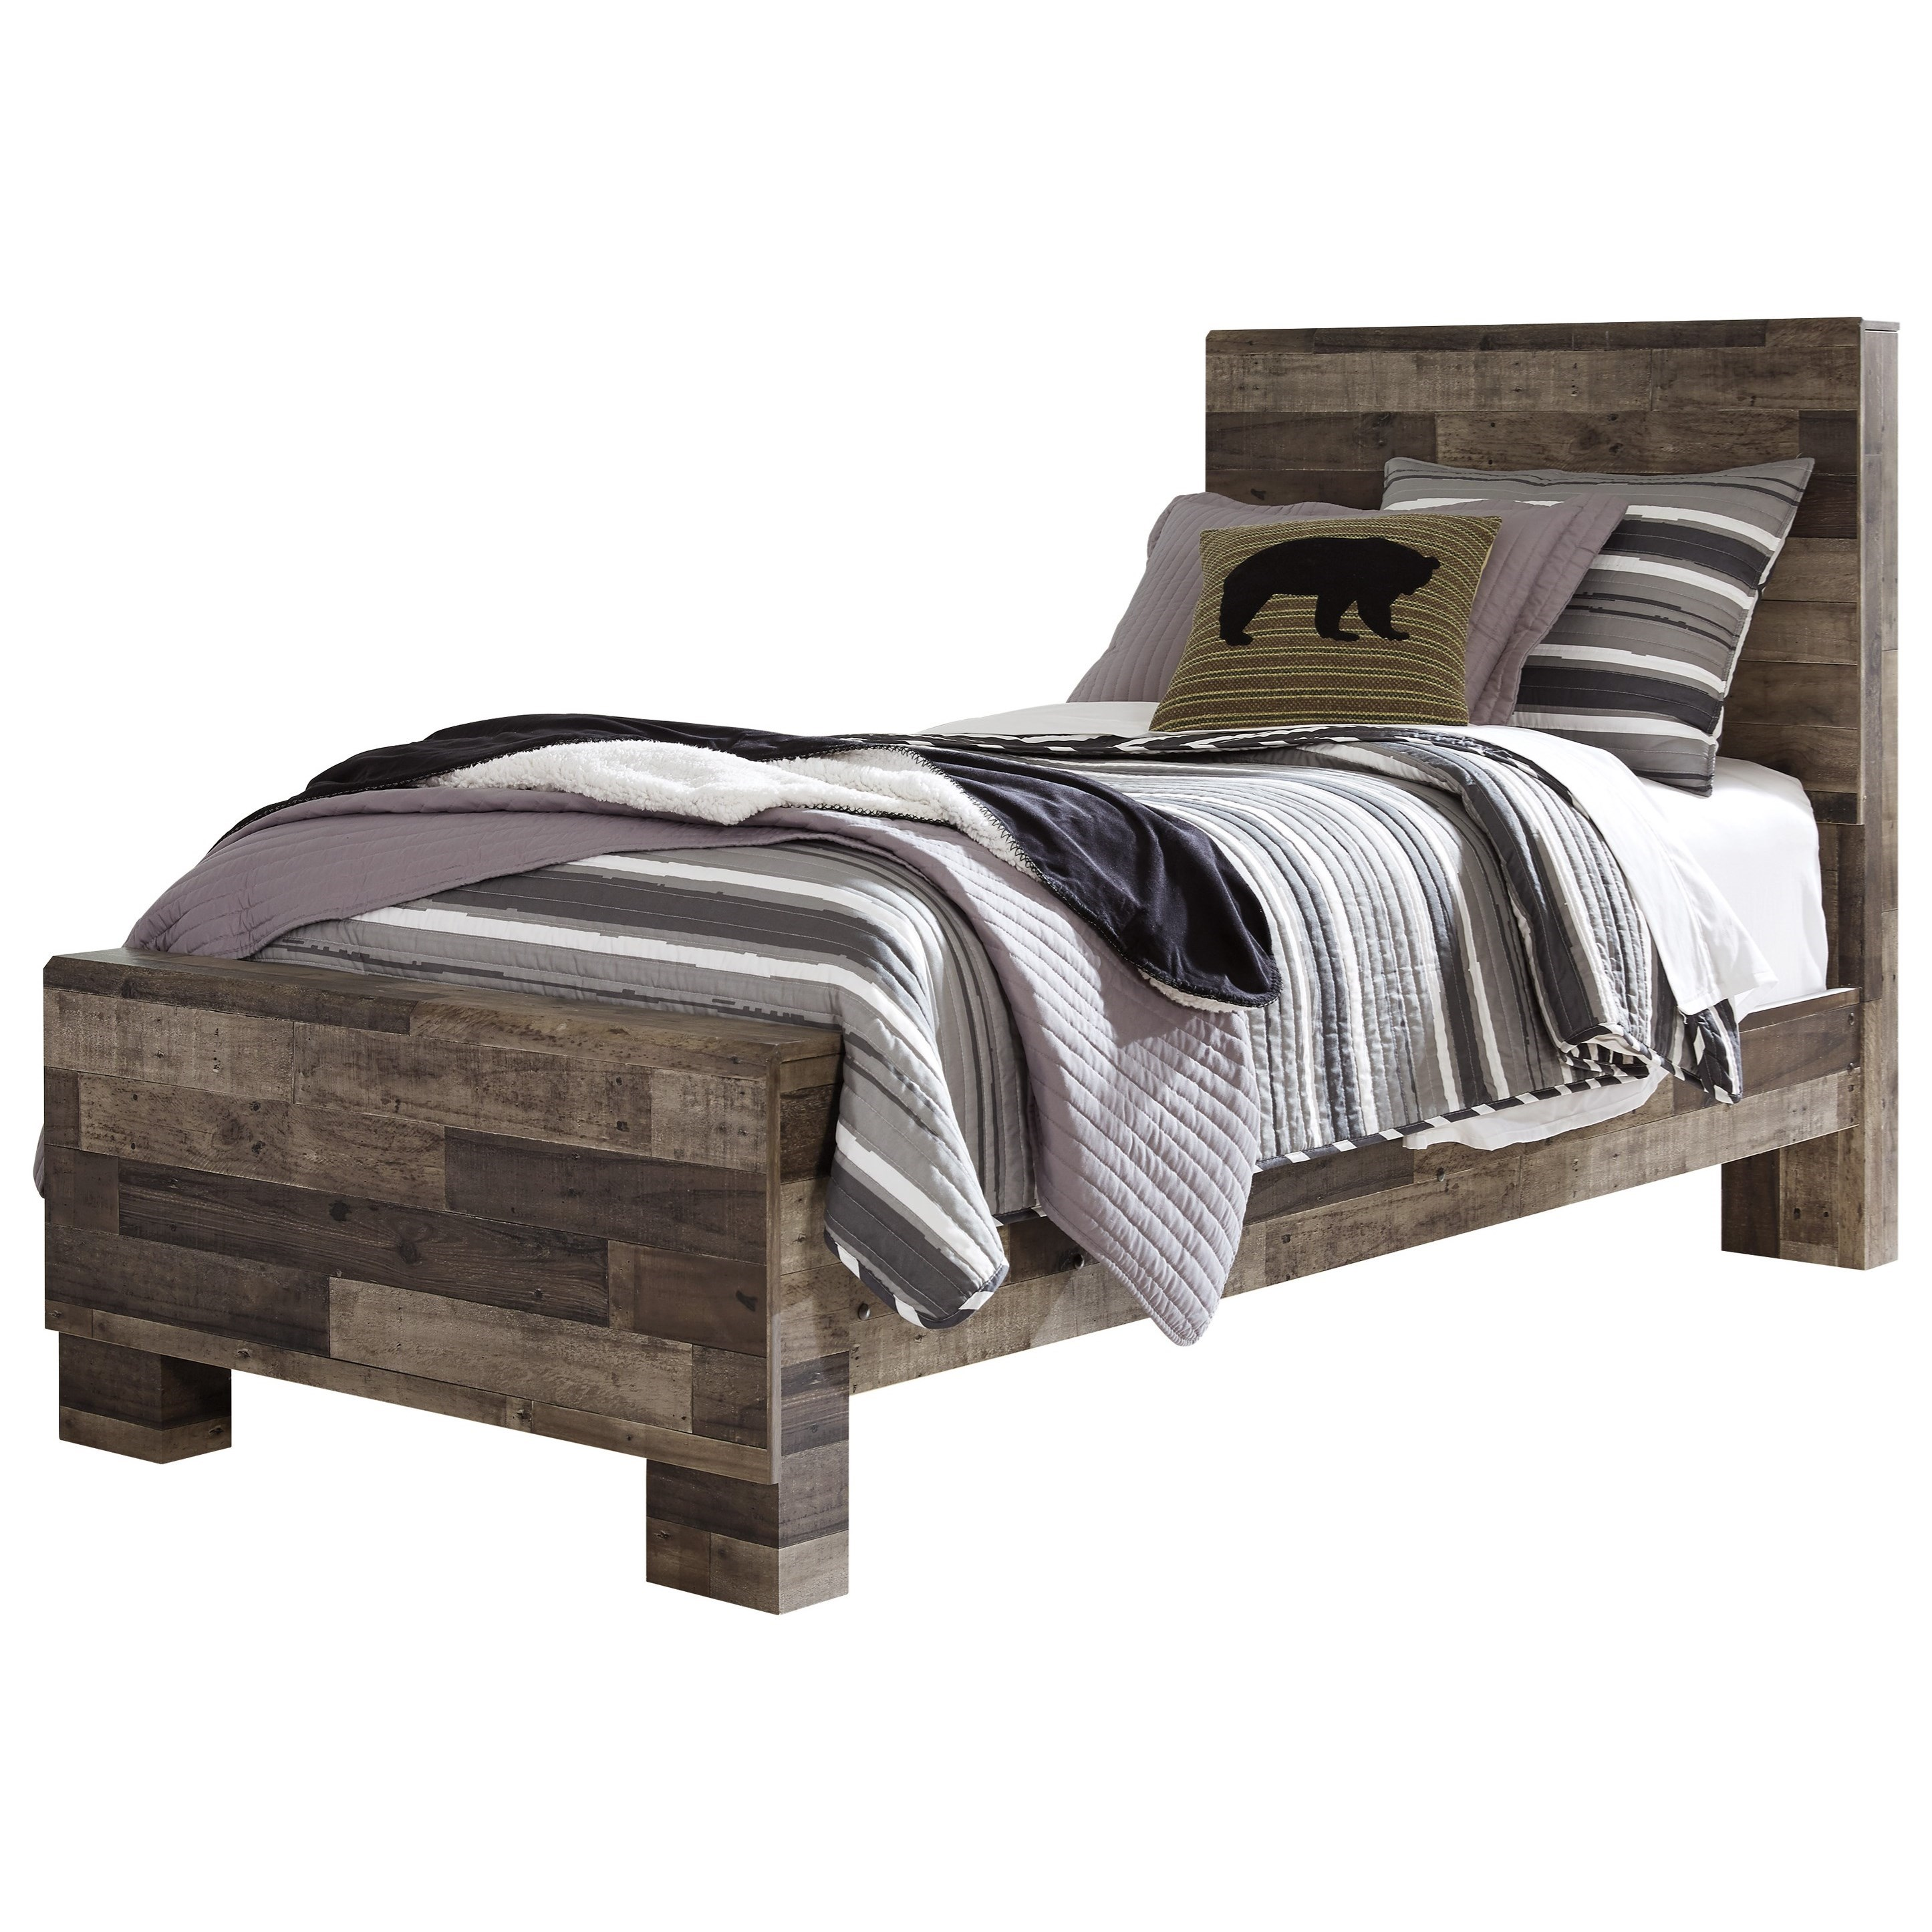 Benchcraft Derekson Rustic Modern Twin Panel Bed Lindy S Furniture Company Panel Beds